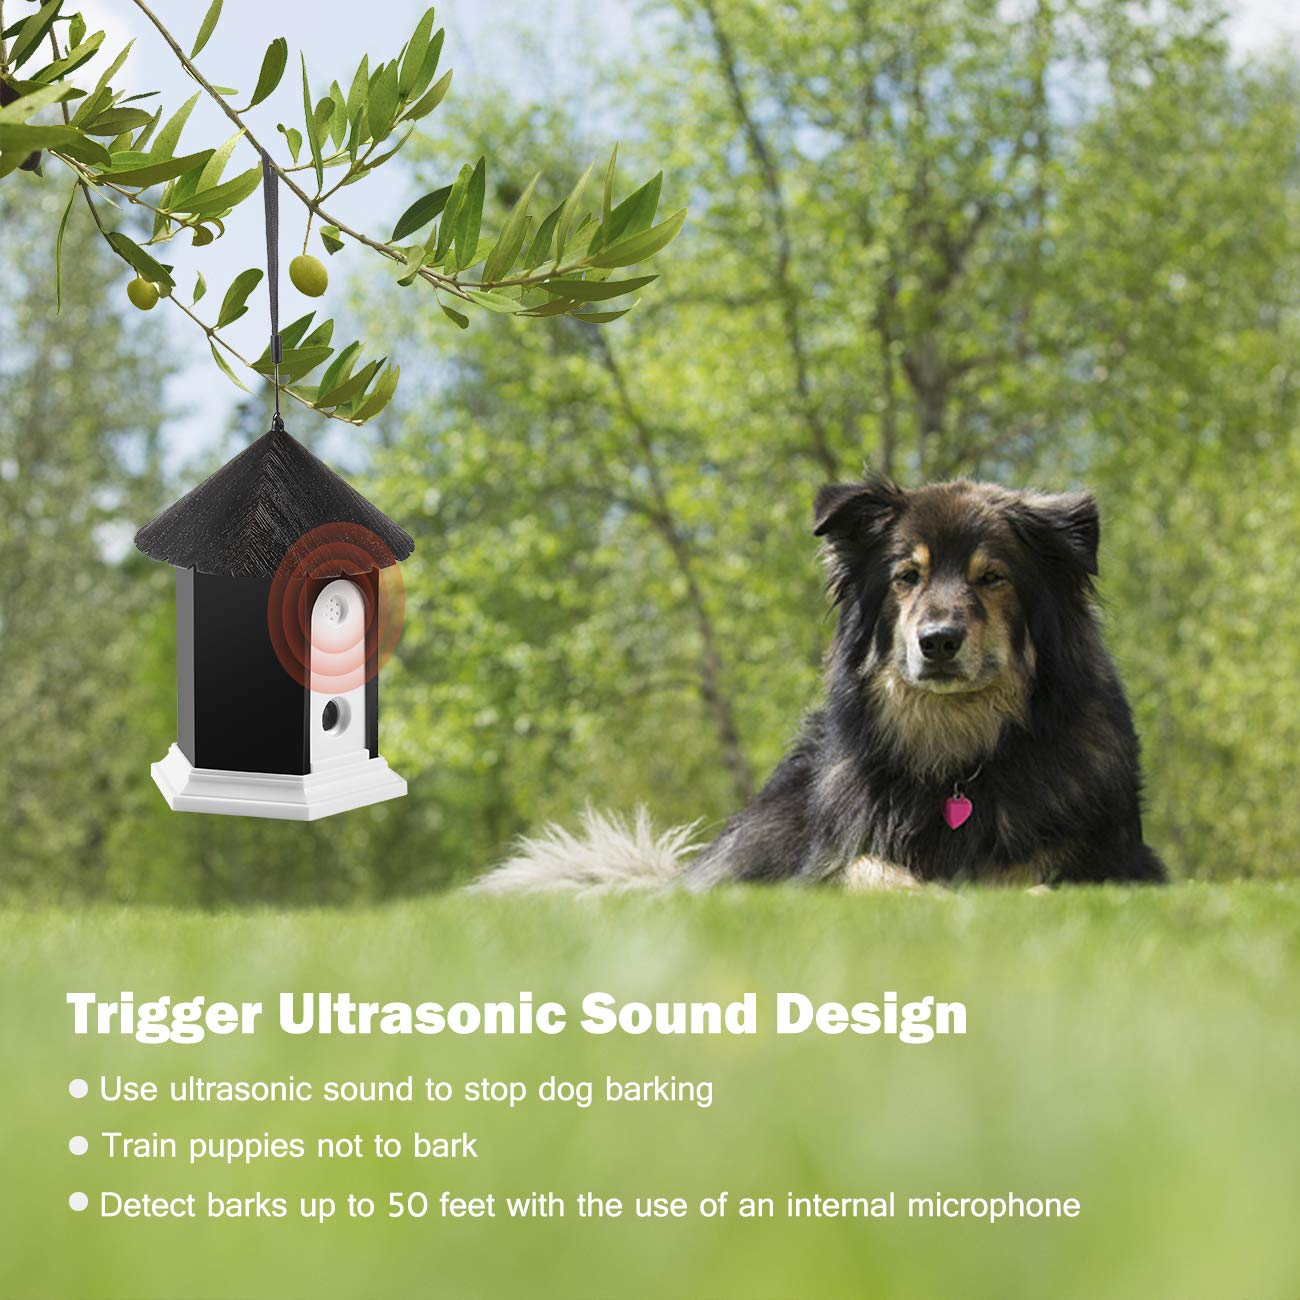 Anti Barking Device Ultrasonic Dog Bark Controller Whistle Pc Related Power Supplies And Control Waterproof Outdoor System In Birdhouse Shape Meterllc Pet